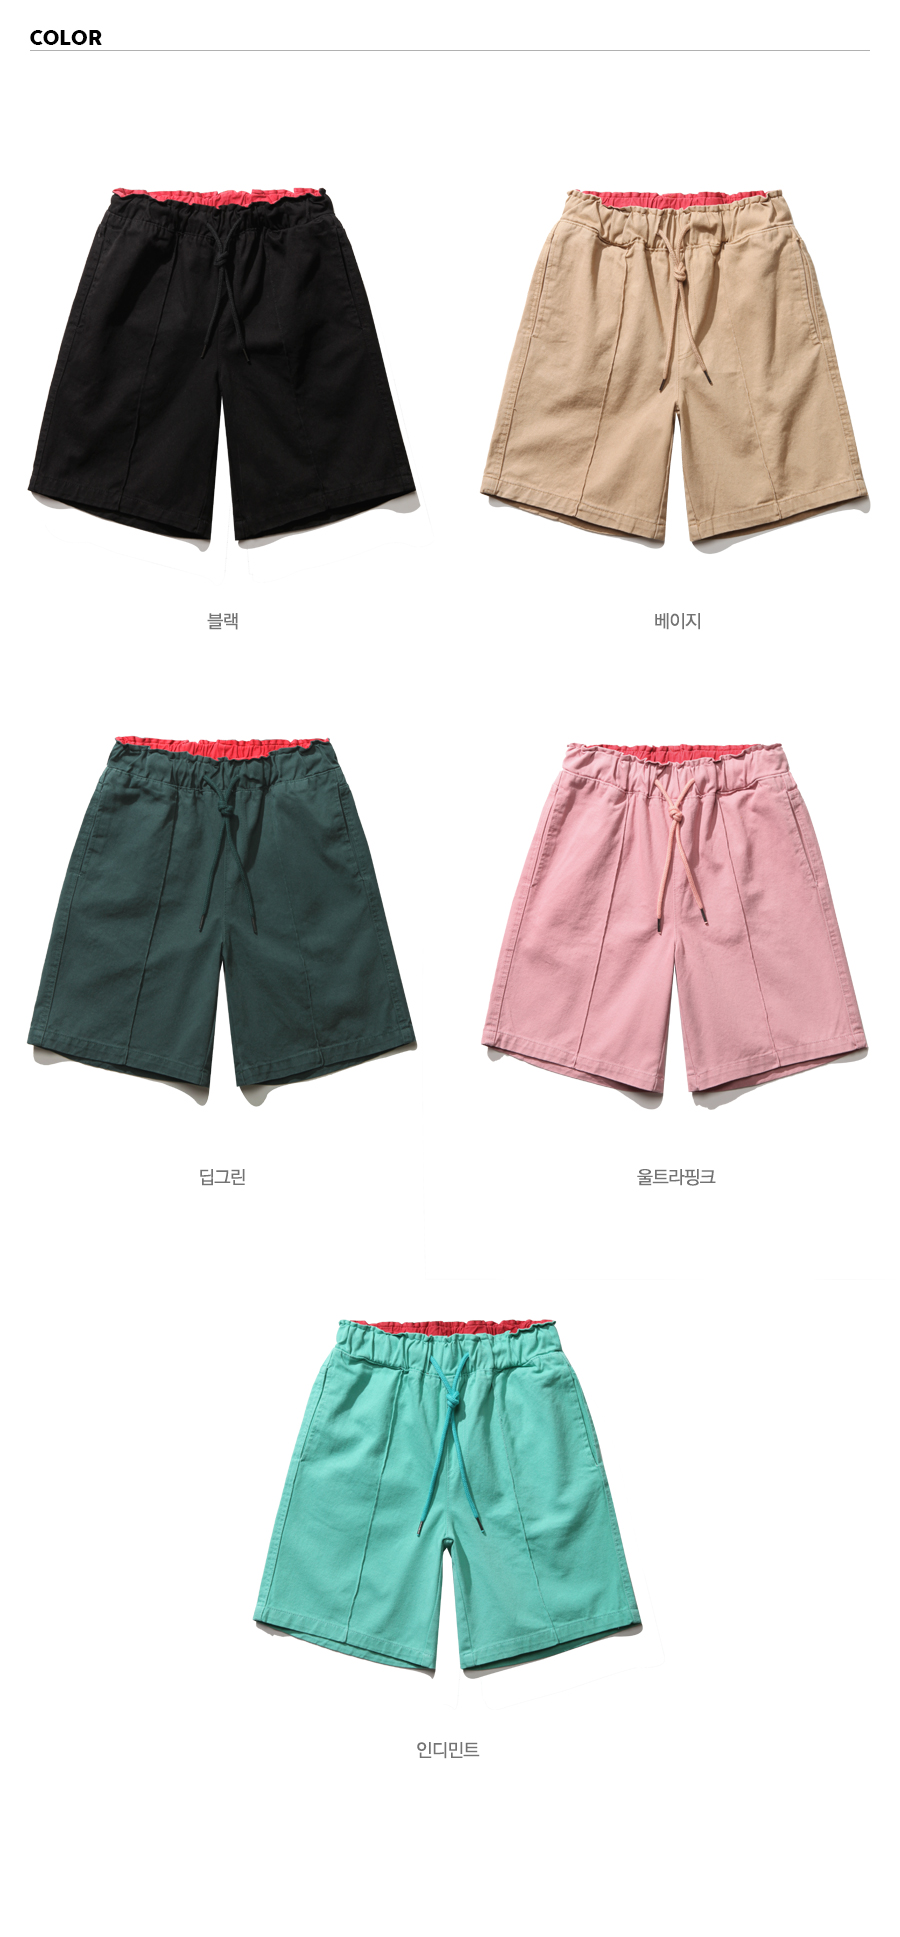 20180518_bio_washing_short_pants_color_kj.jpg